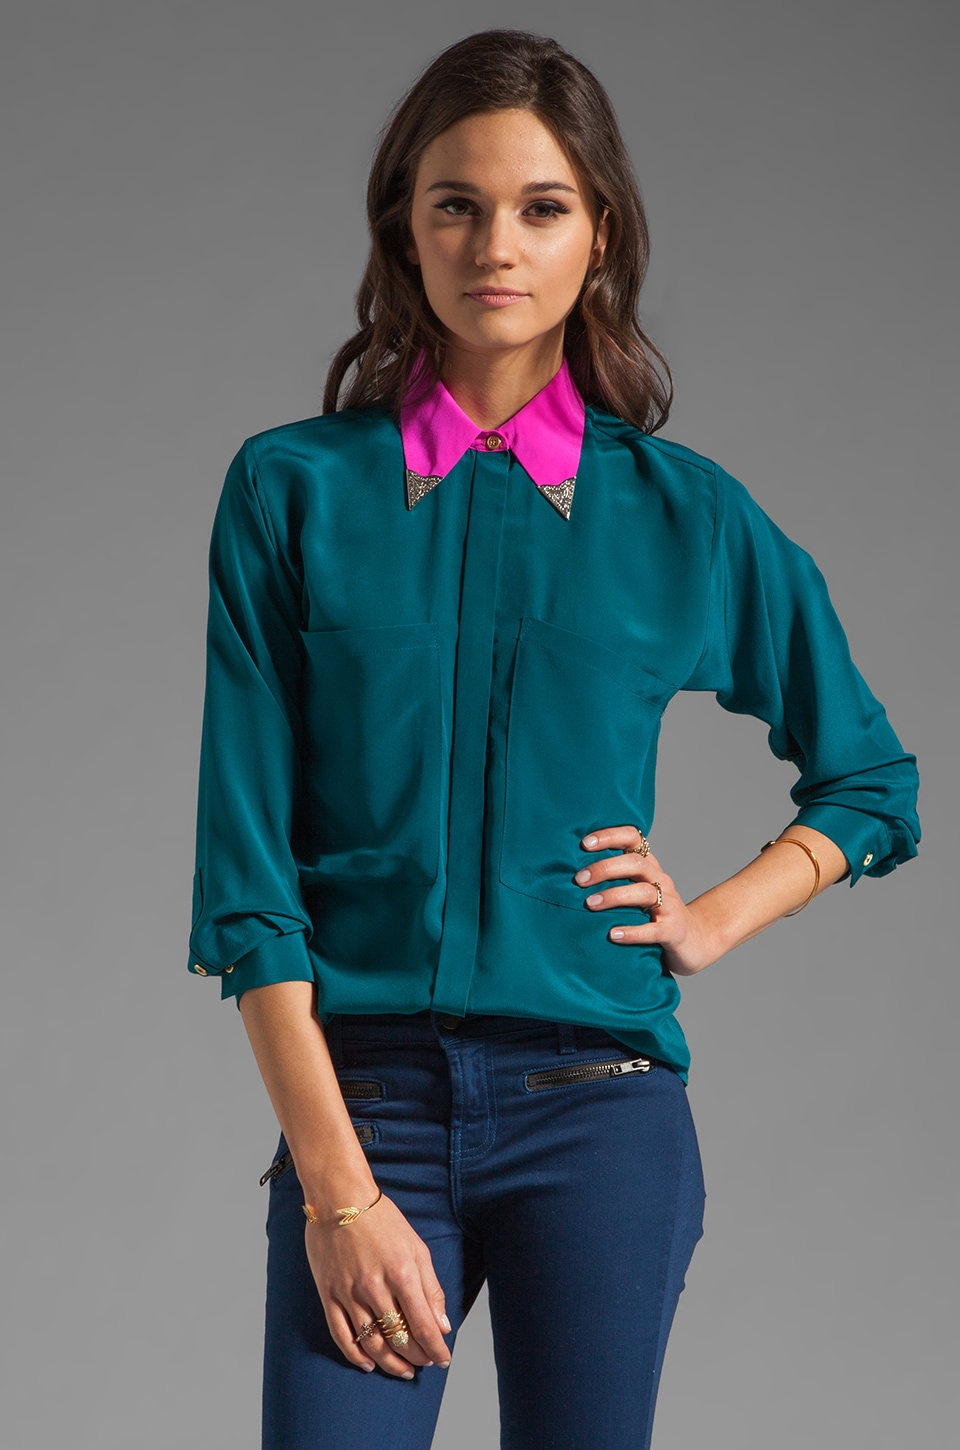 Naven 2 Tone Oversized Pocket Blouse with Collar Tips in Teal/Pop Pink